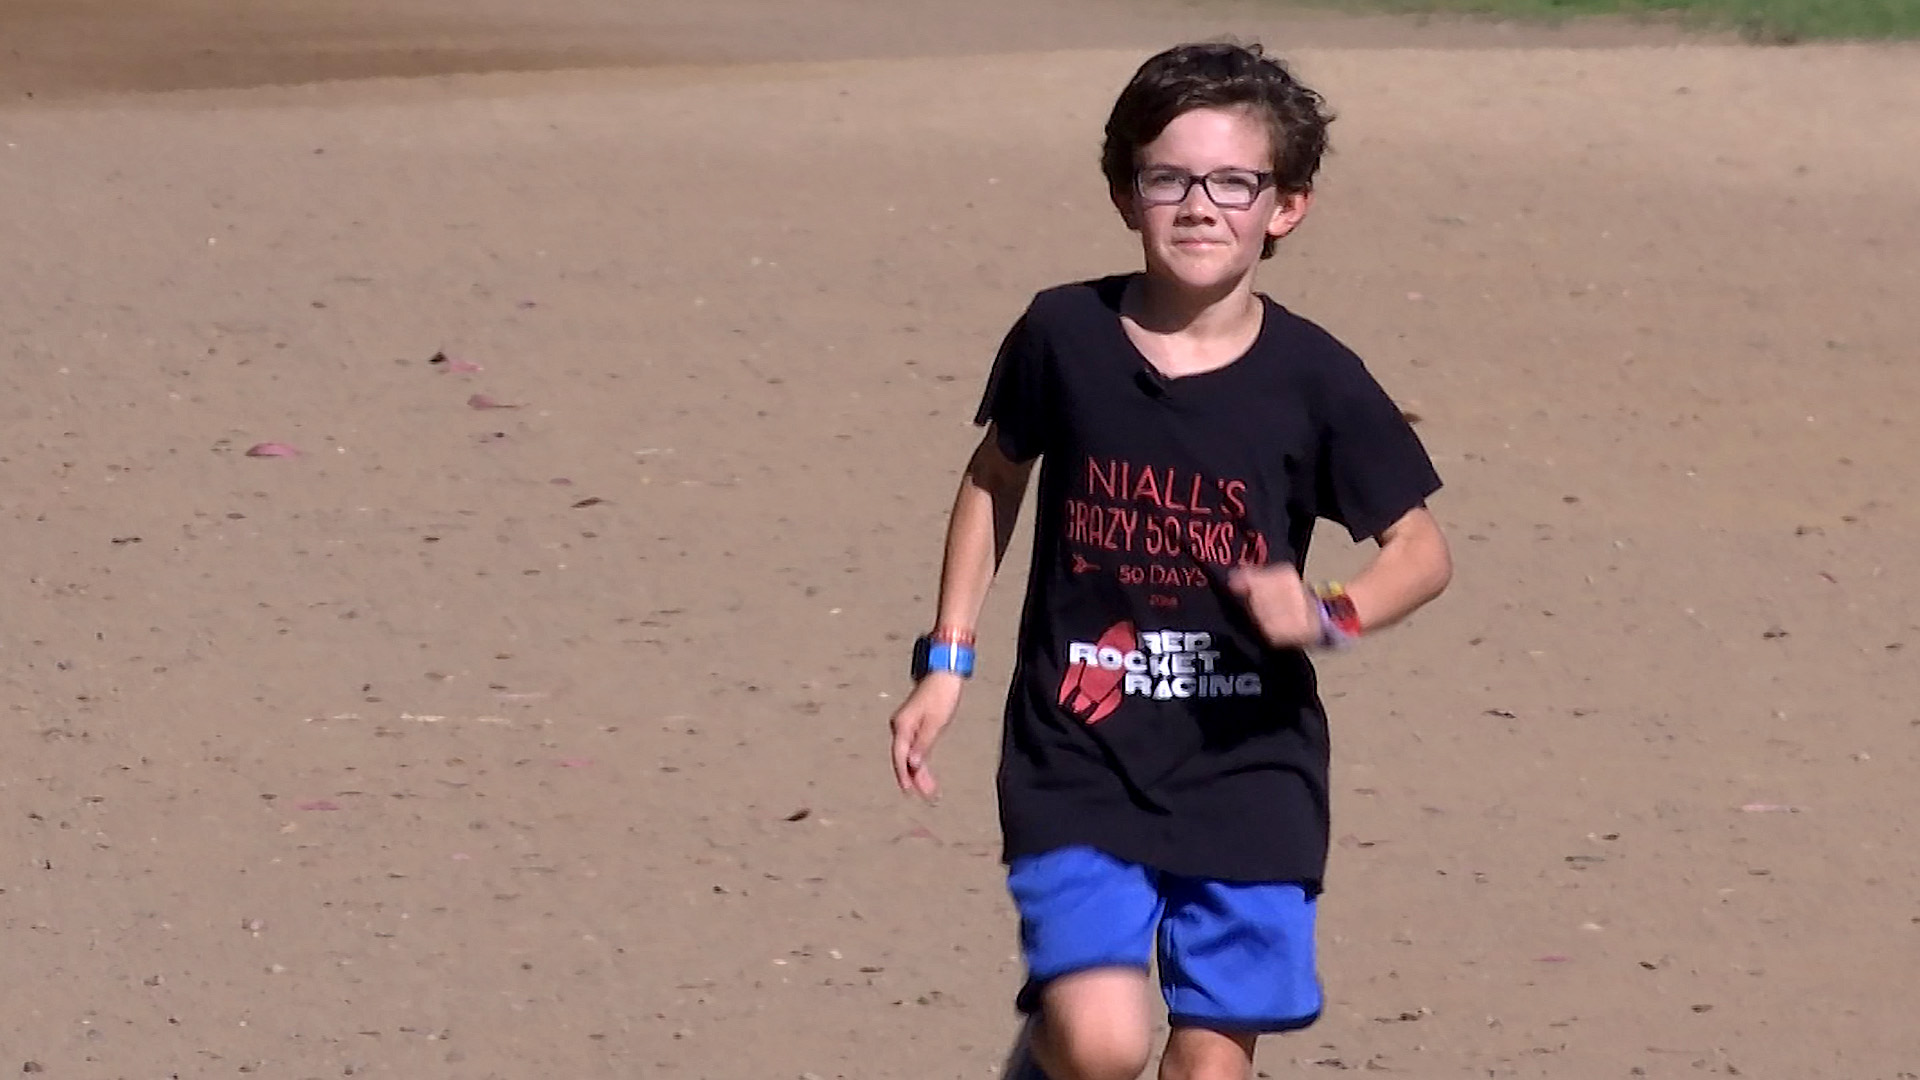 San Francisco 10-Year-Old Runs 5K Every Day For 50 Days In Support Of Grandfather Battling Cancer